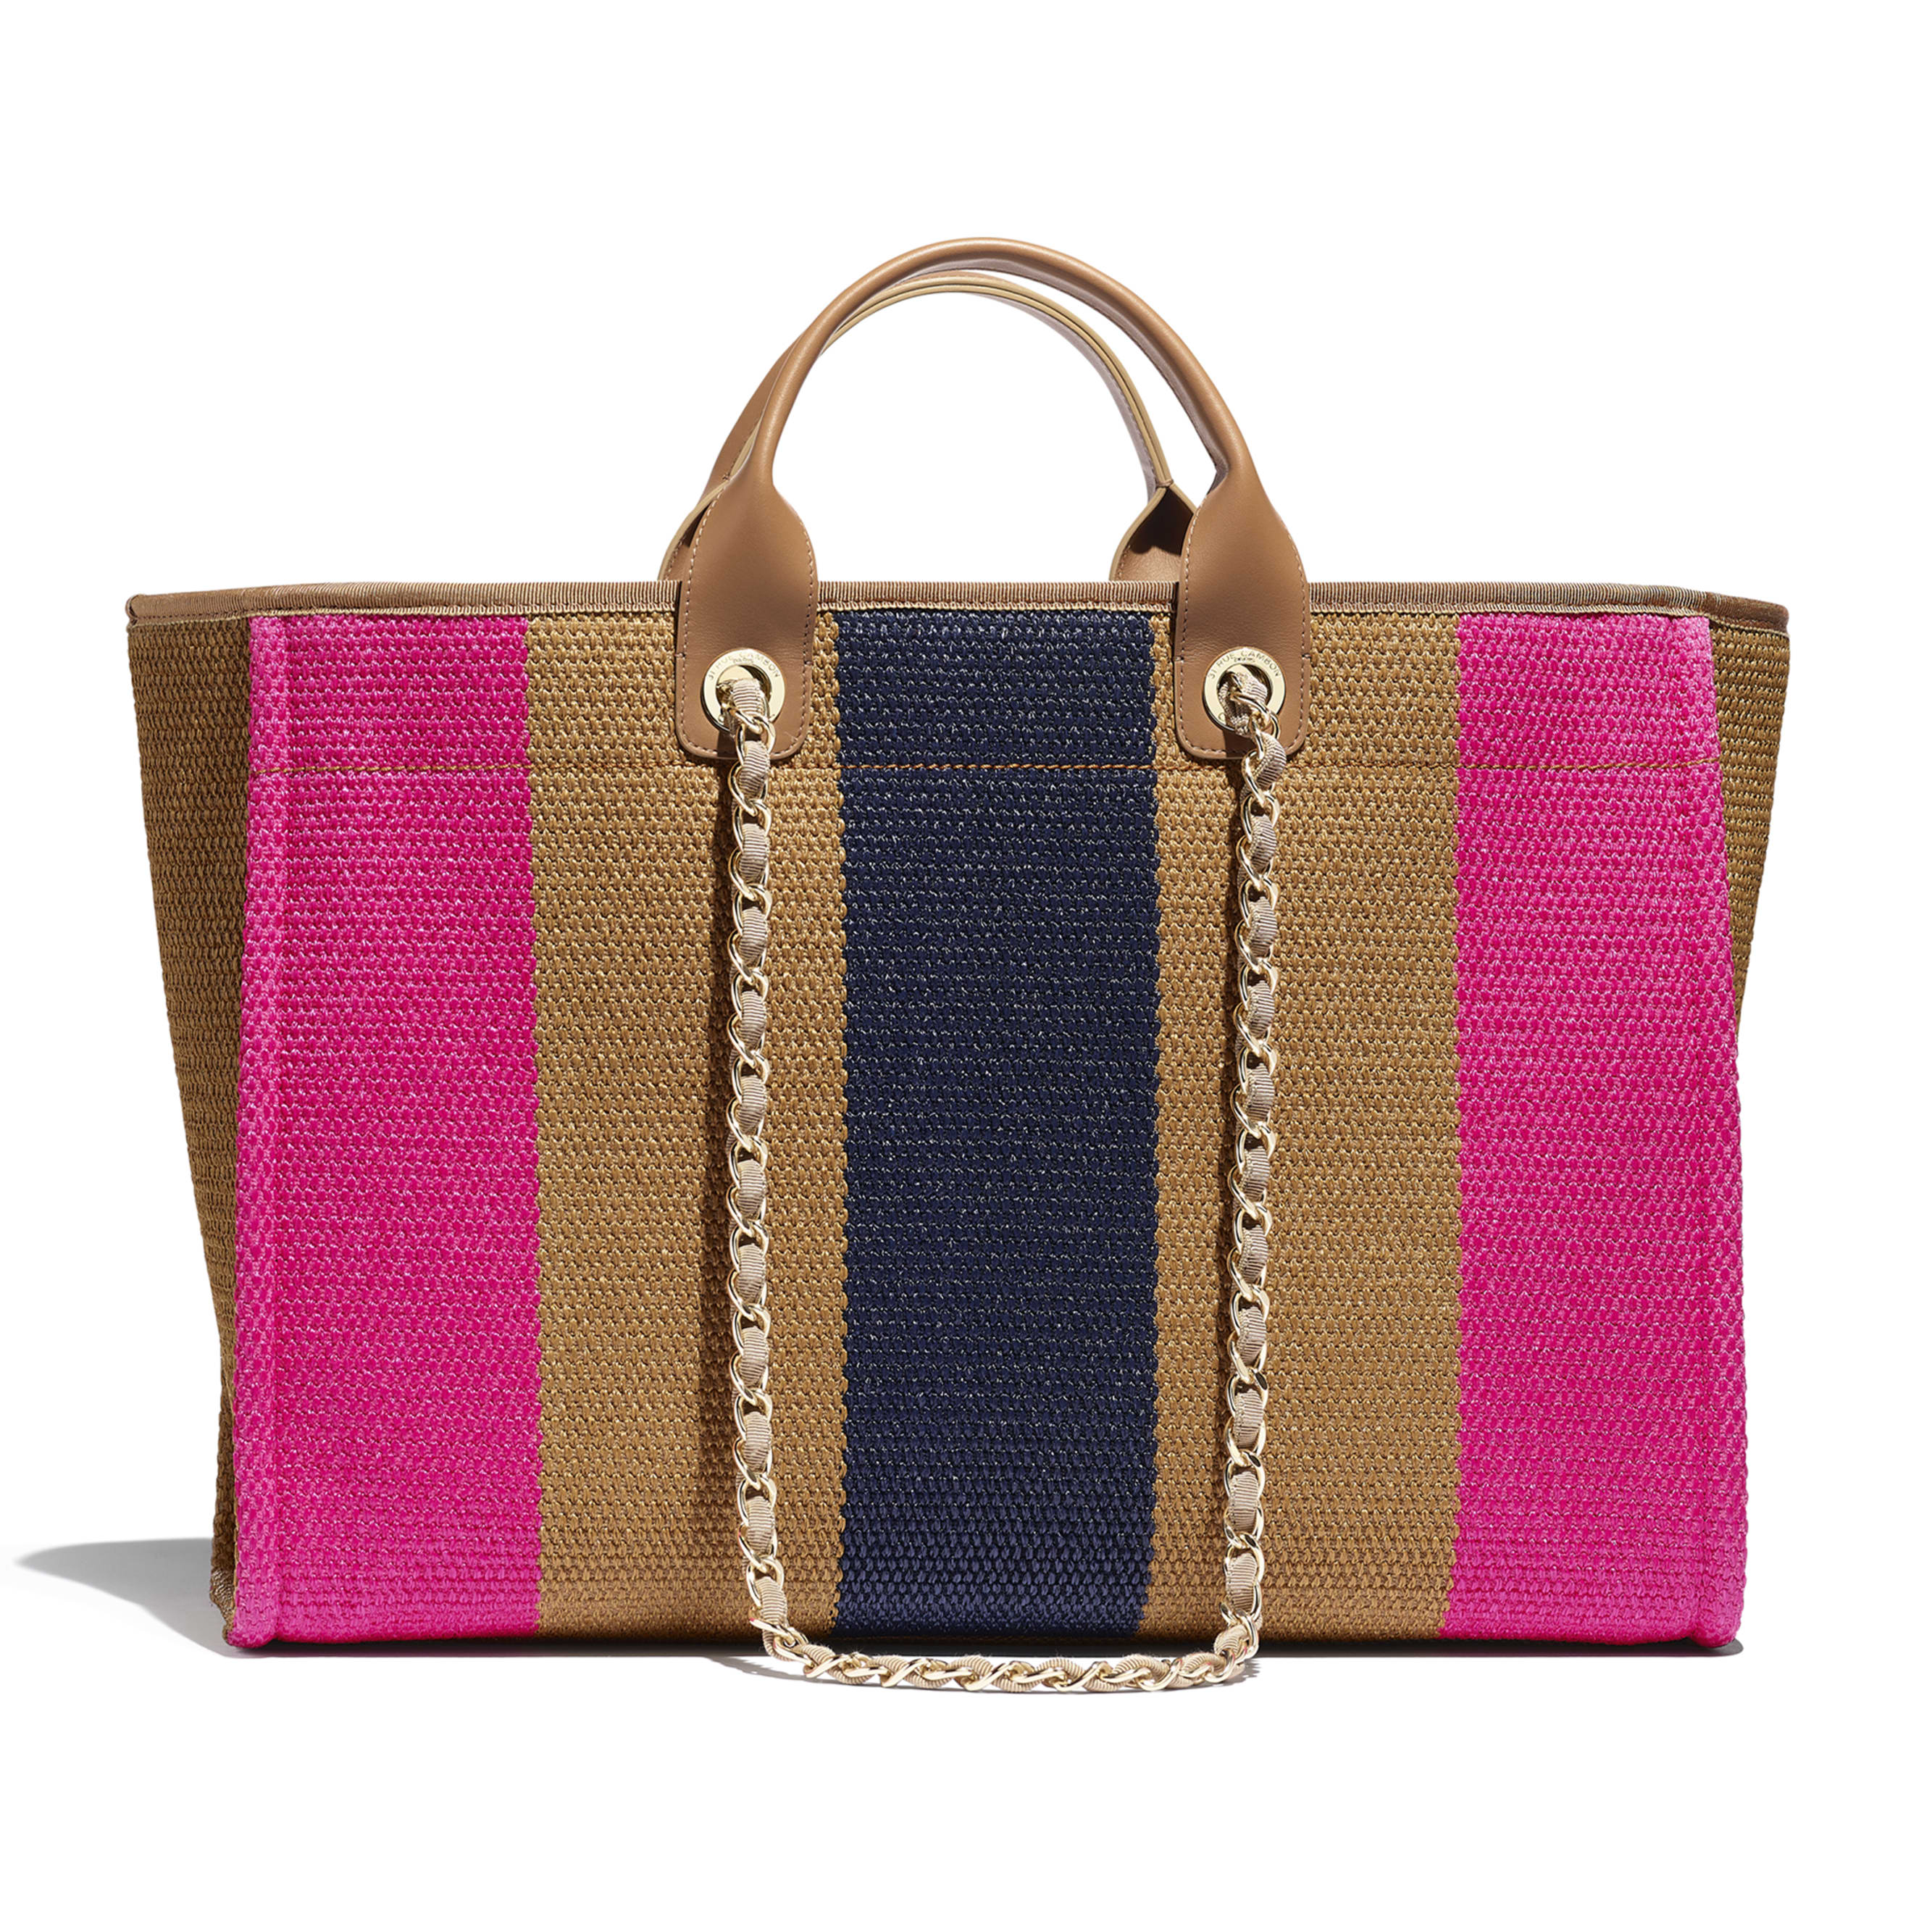 Large Tote - Dark Beige, Fuchsia & Navy Blue - Viscose, Cotton, Calfskin & Gold-Tone Metal - Alternative view - see standard sized version